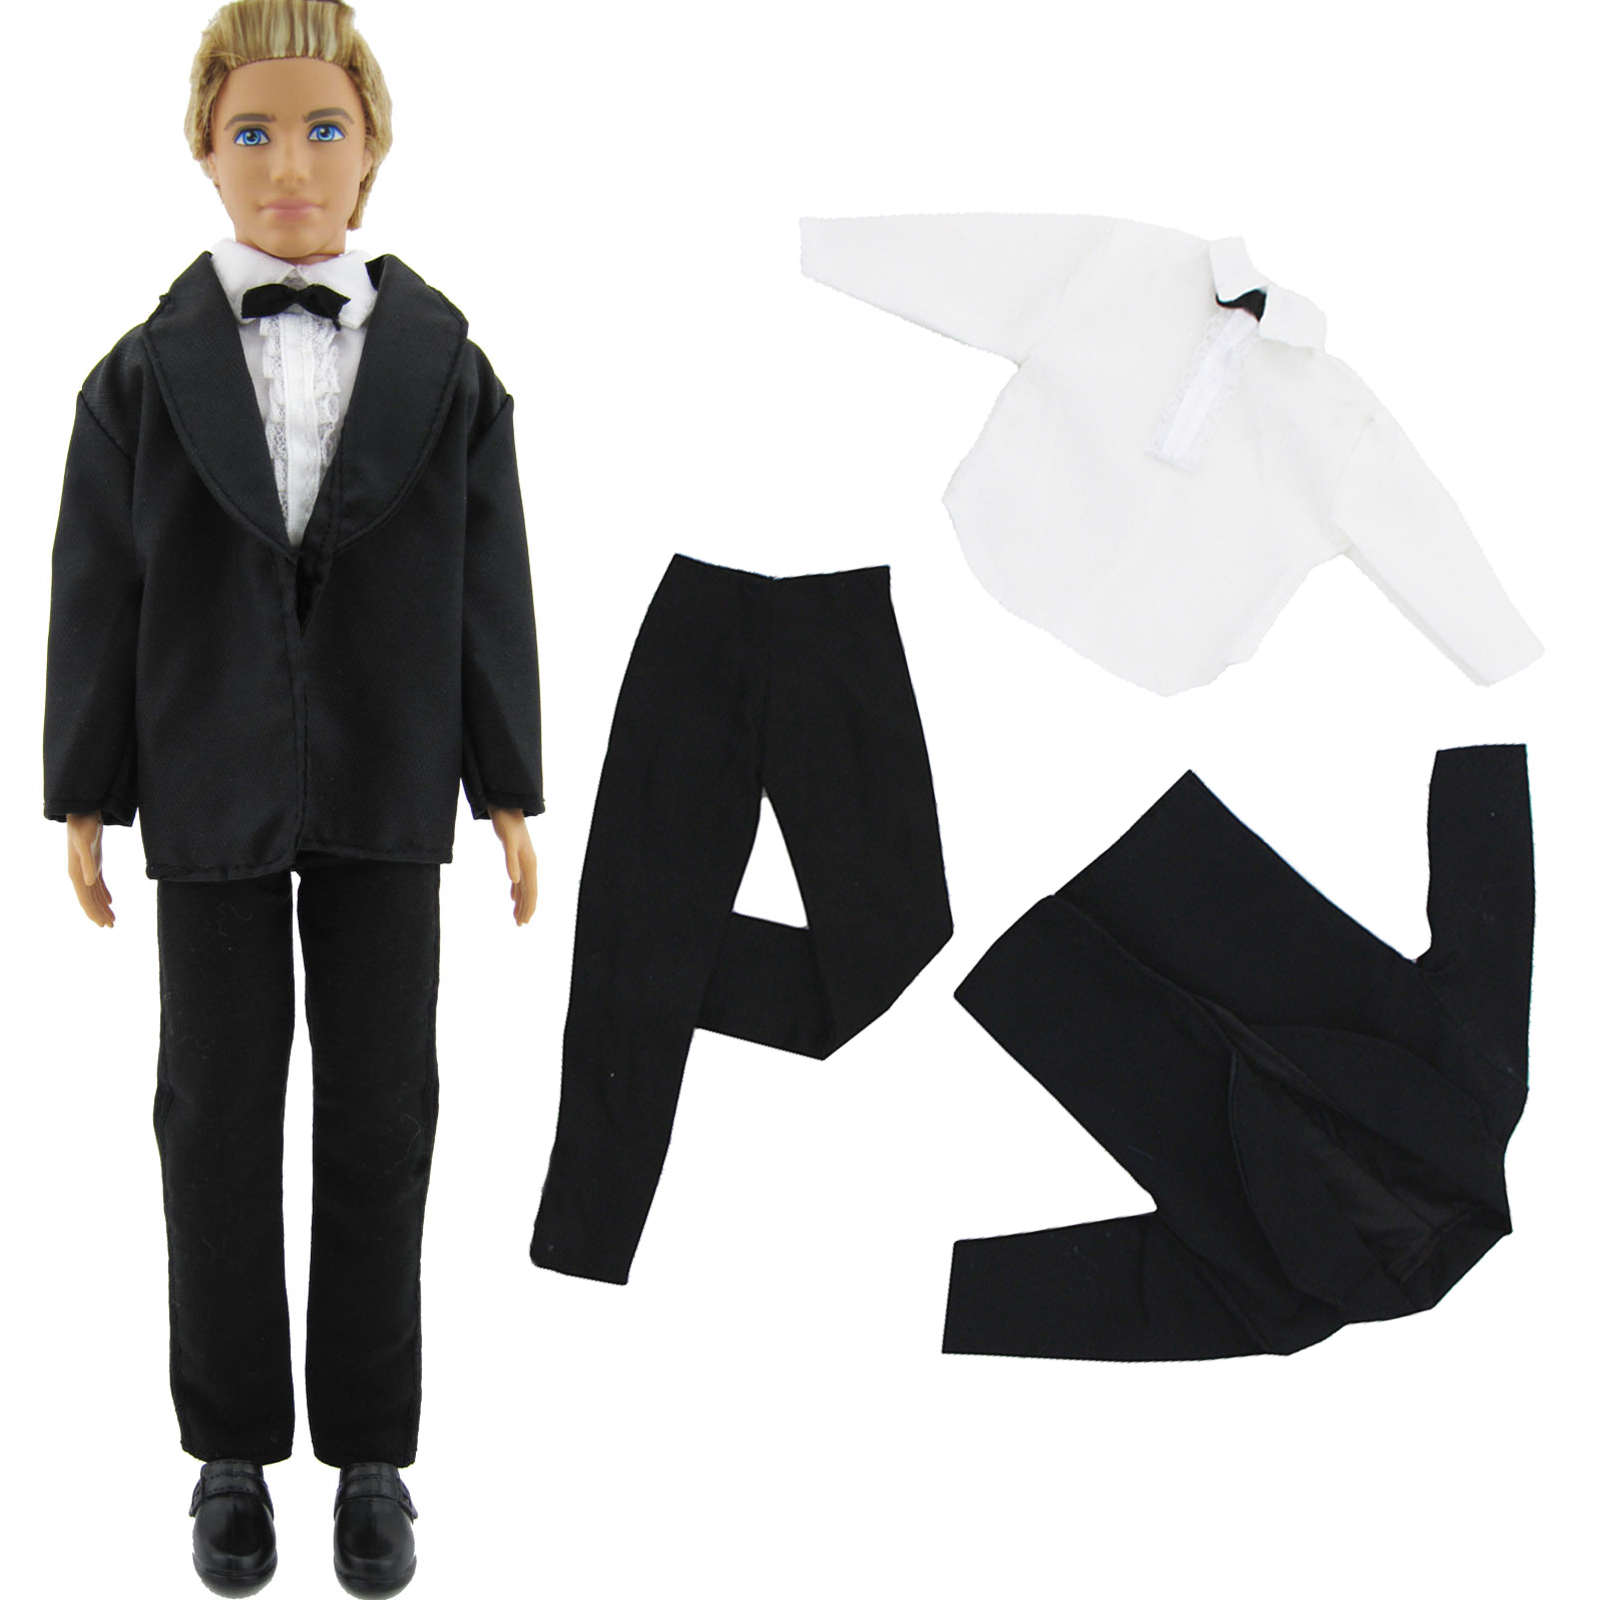 3in1 Handmade Formal Business Suits Tuxedo Black Coat White Shirt Bowknot Pants For Barbie Friend Ken Doll Clothes Accessories denim